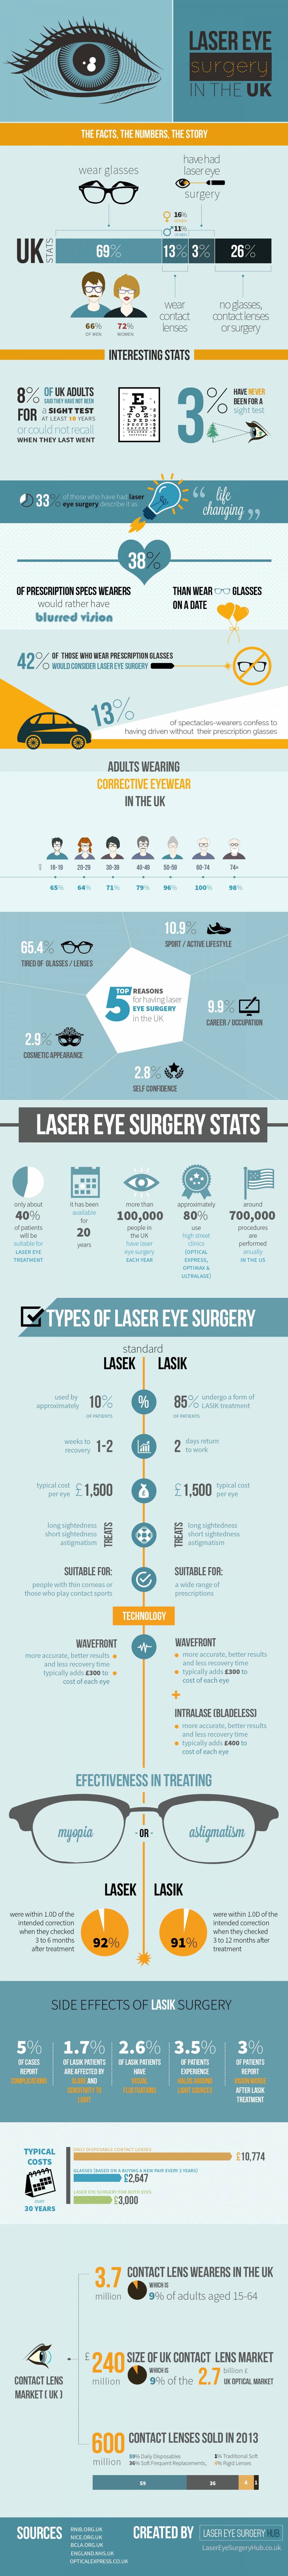 Laser Eye Surgery In the UK Infographic